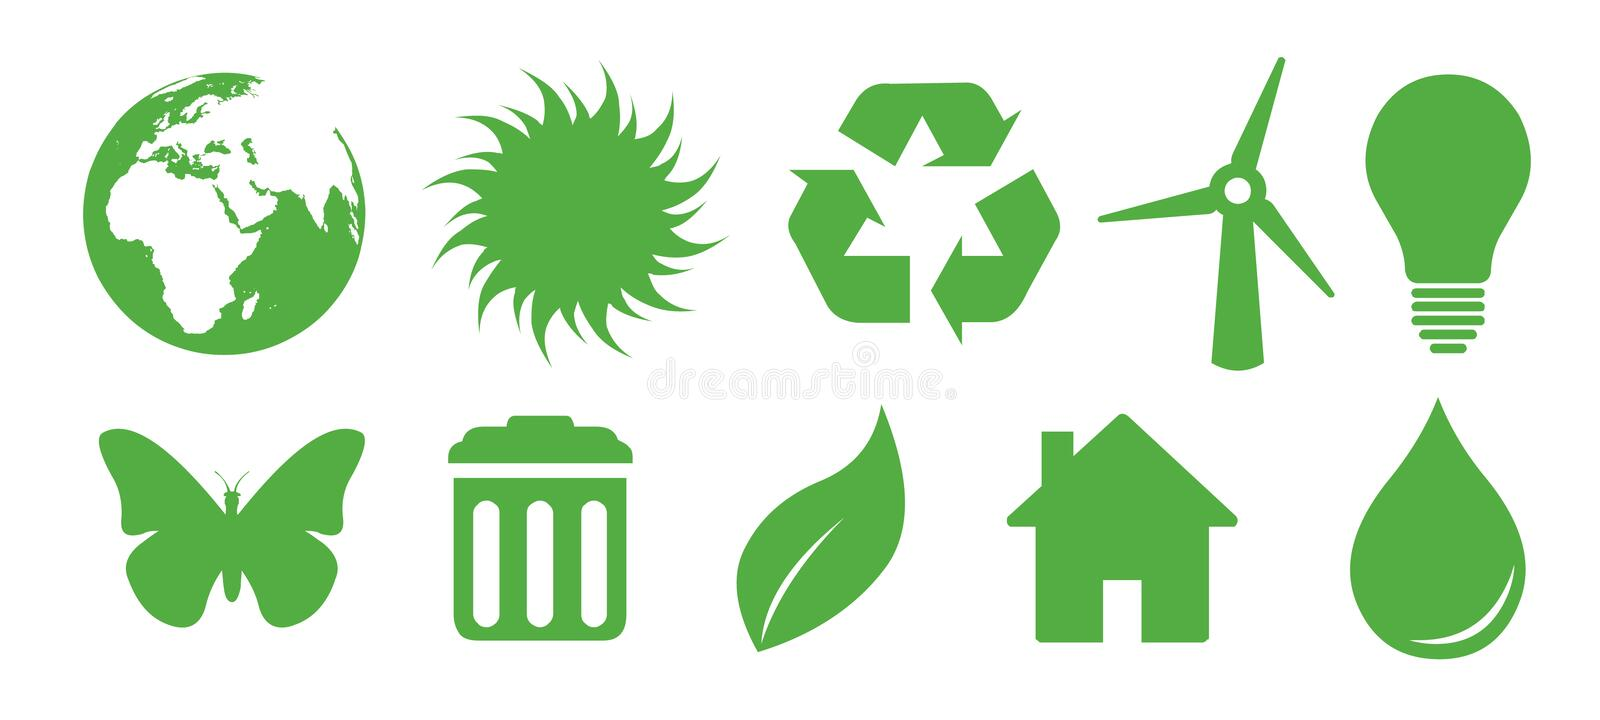 Download Recycling icons stock illustration. Illustration of natural - 9232934